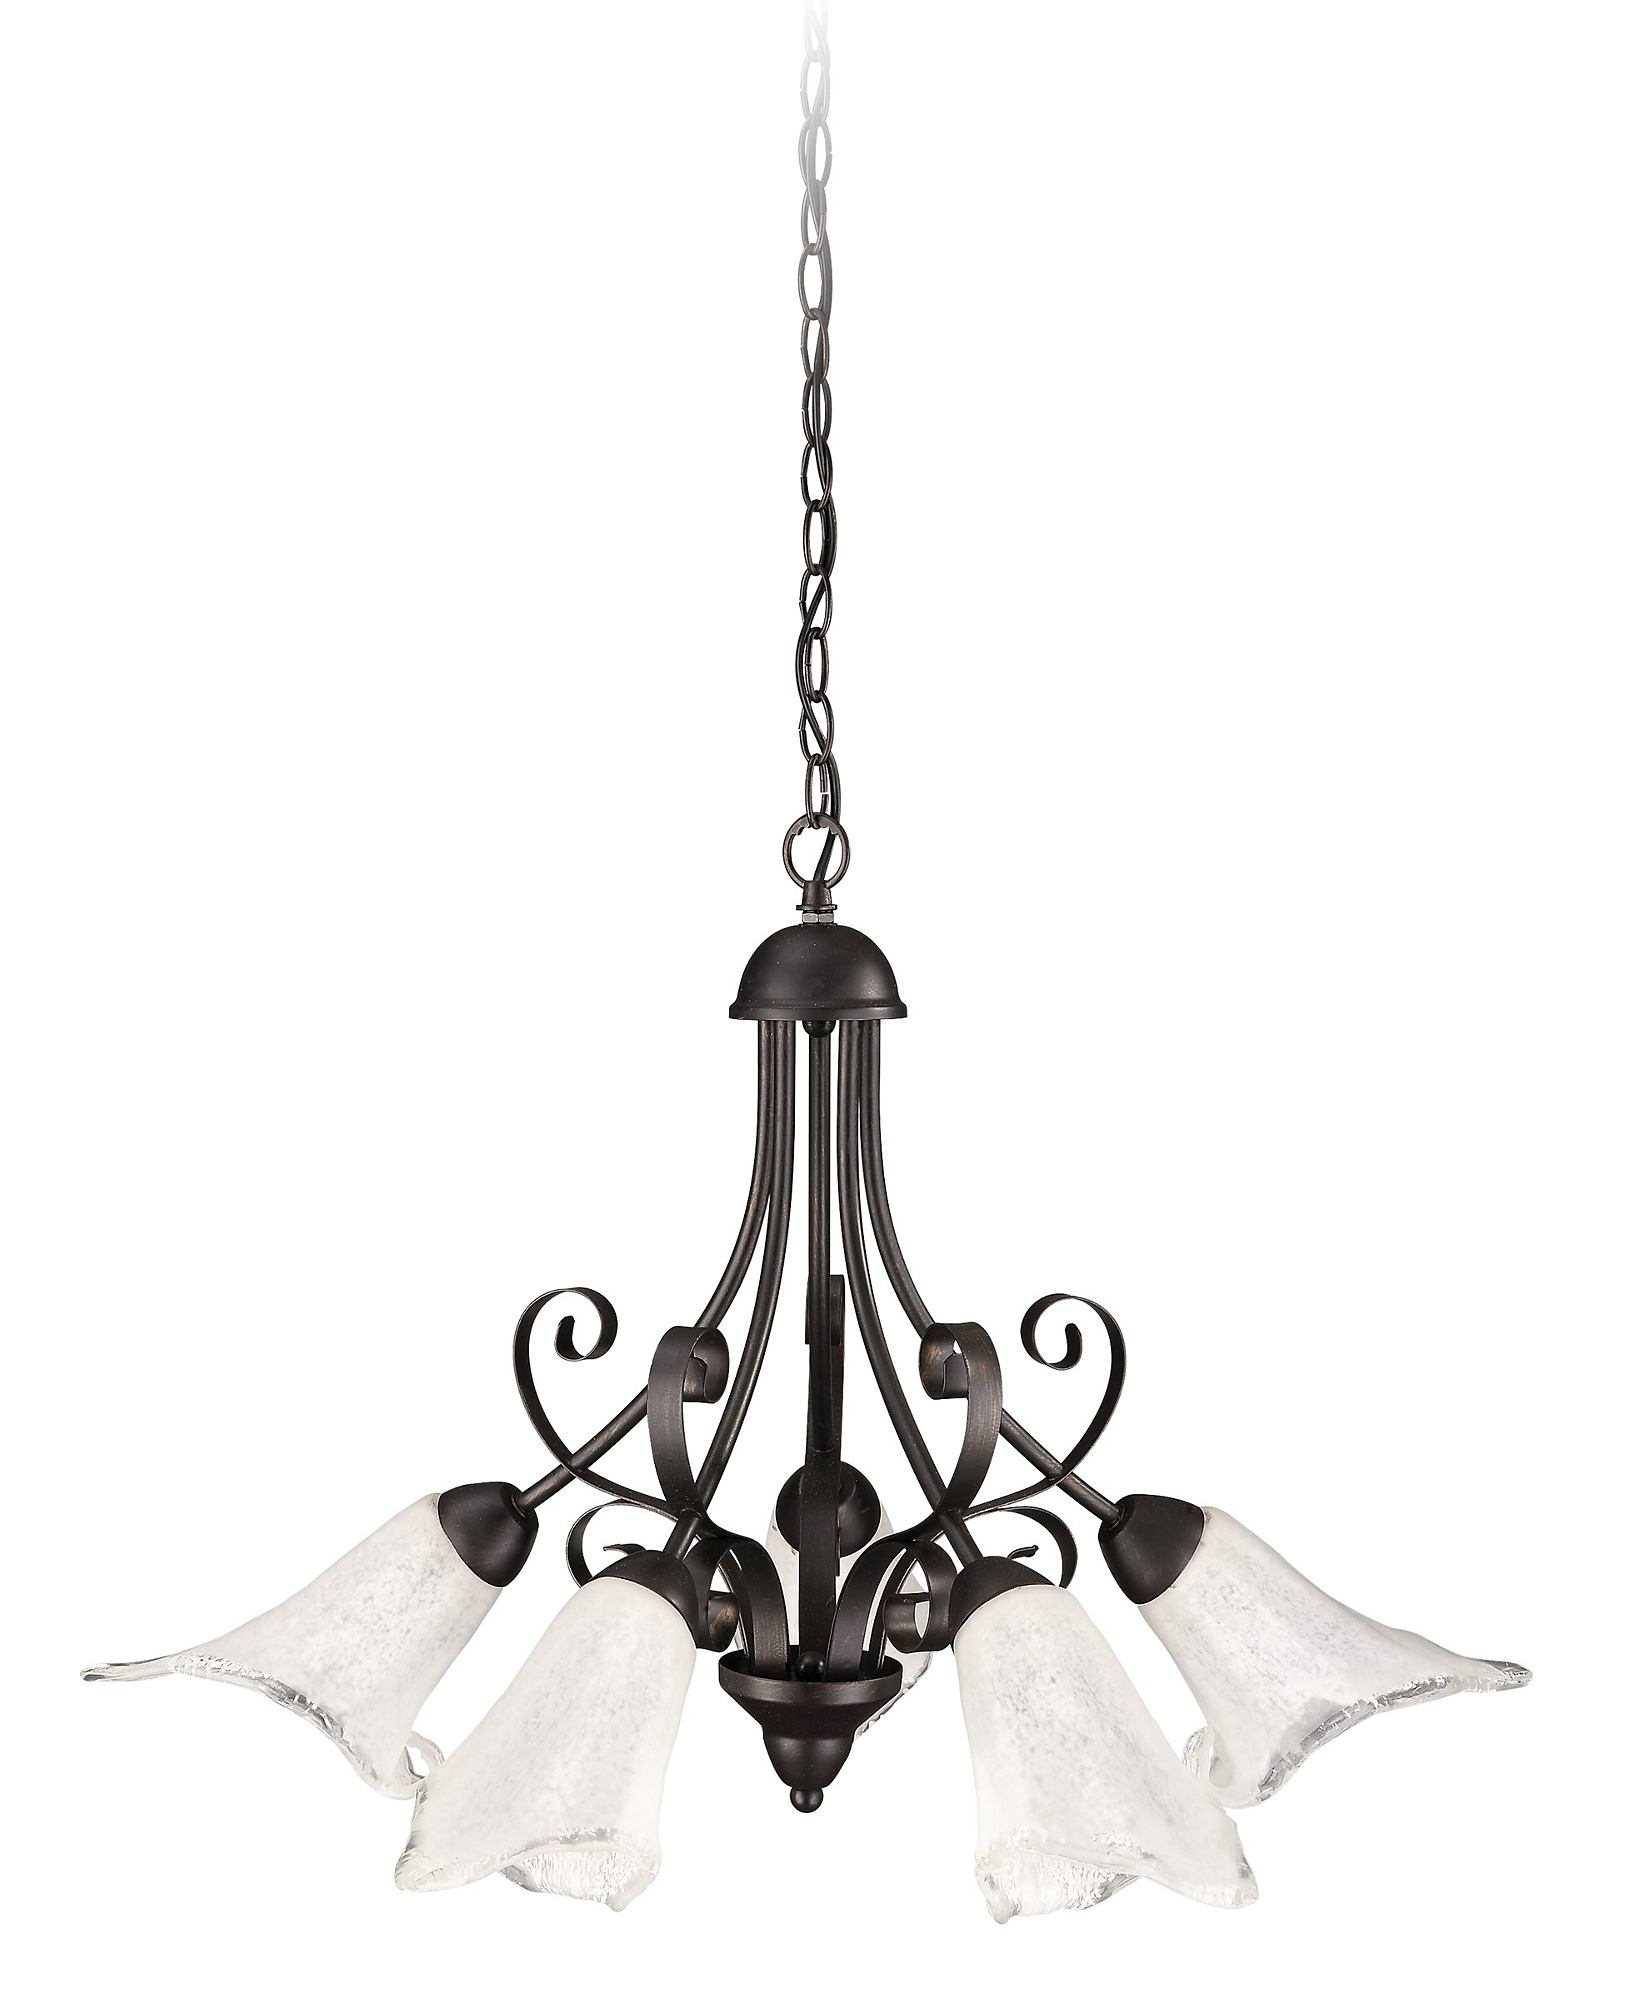 - Roomstylers - 37551 Bk Brushed Classic pendant